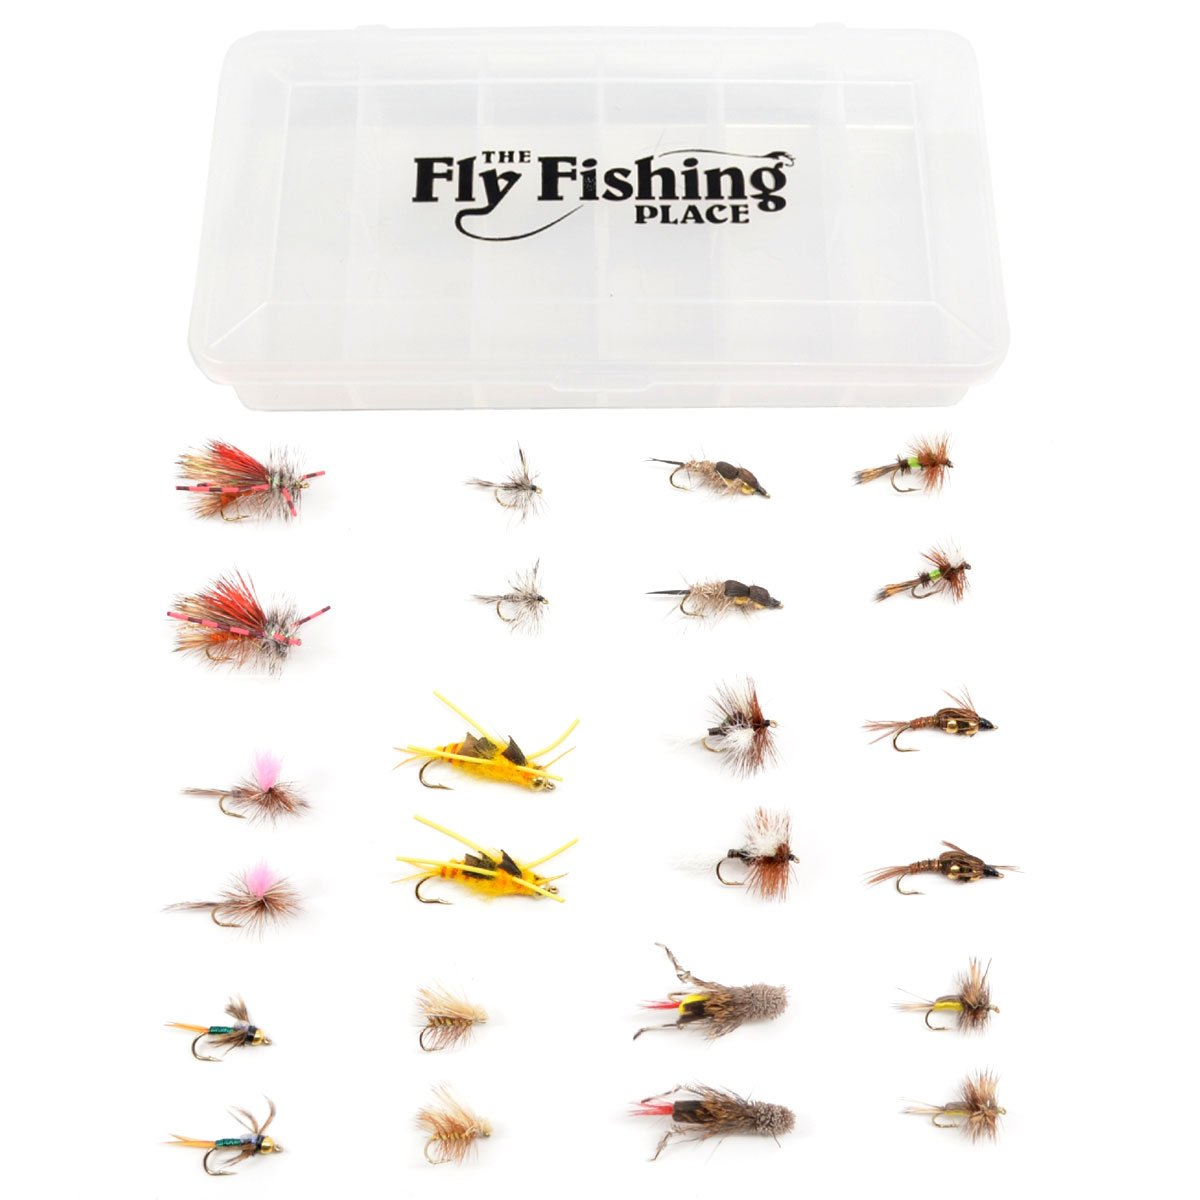 Western Trout Fly Assortment - Essential Dry and Nymph Fly Fishing Flies Collection - 2 Dozen Trout Flies with Fly Box 10pcs beadhead pm caddis 14 nymphs dry fly fishing trout flies page 5